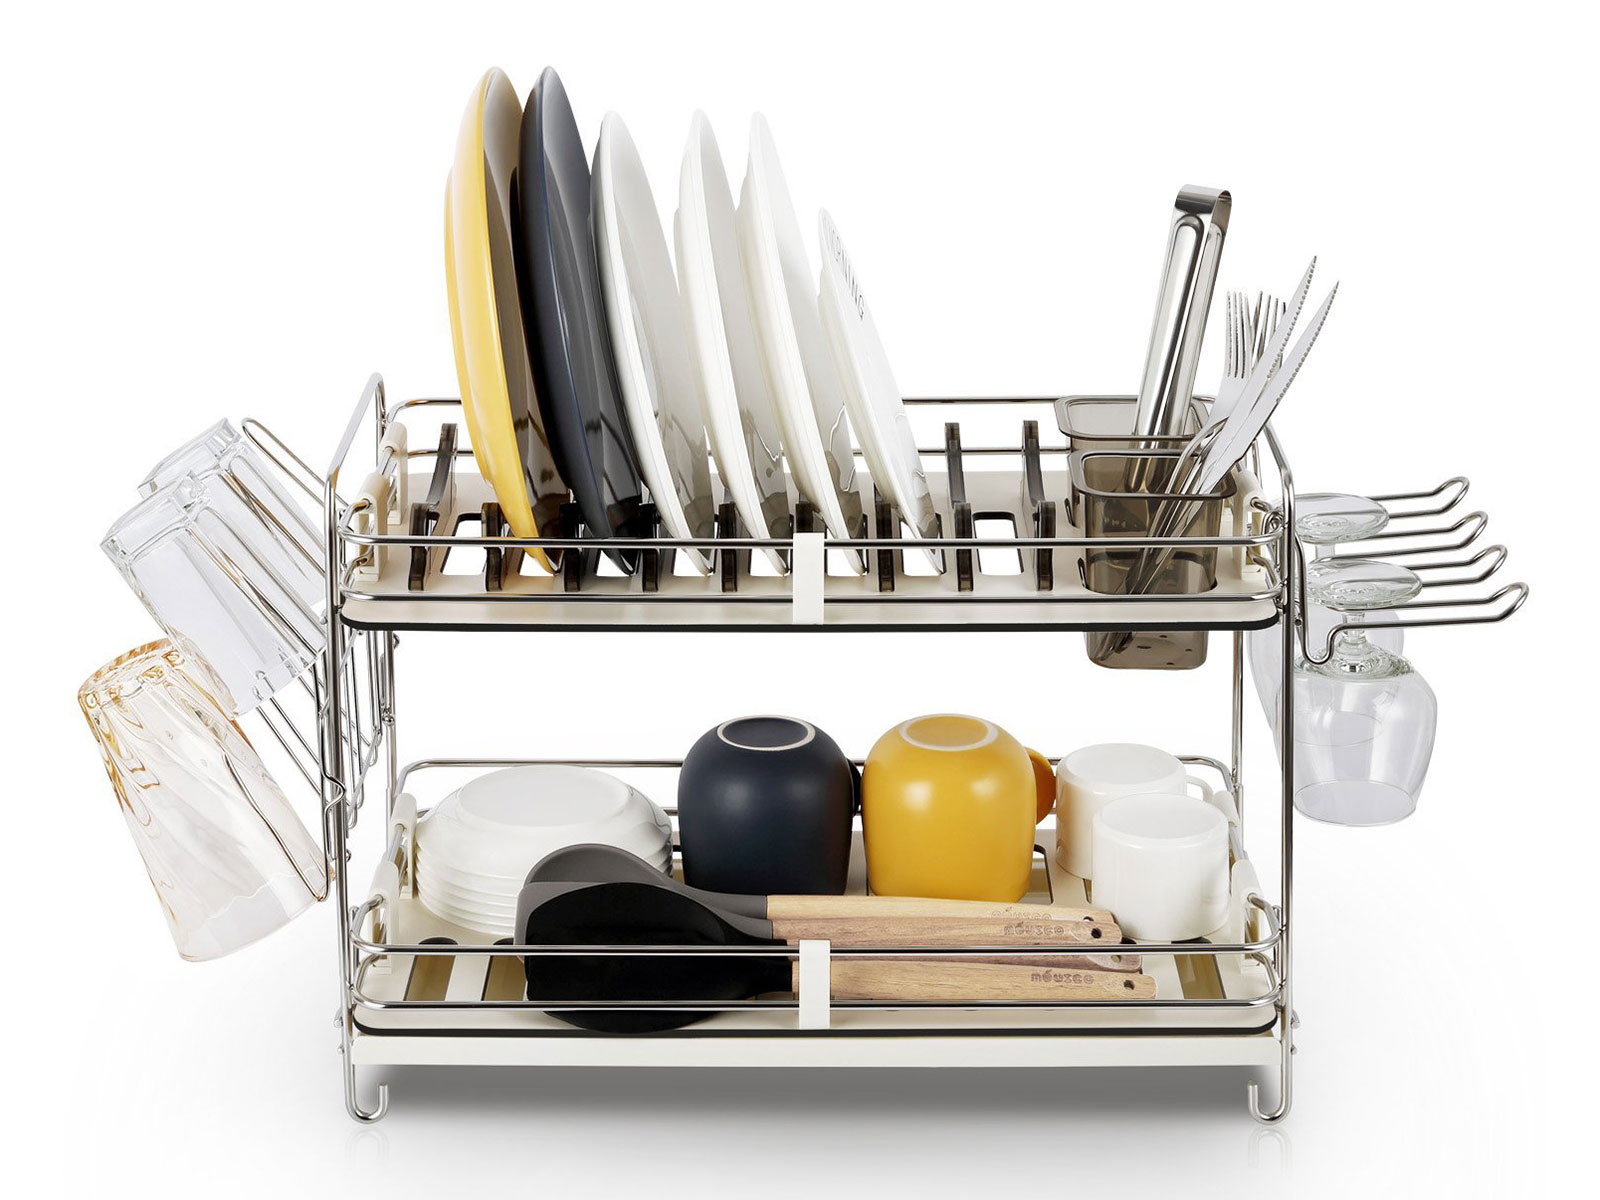 Miusco 2-Tier Dish Rack